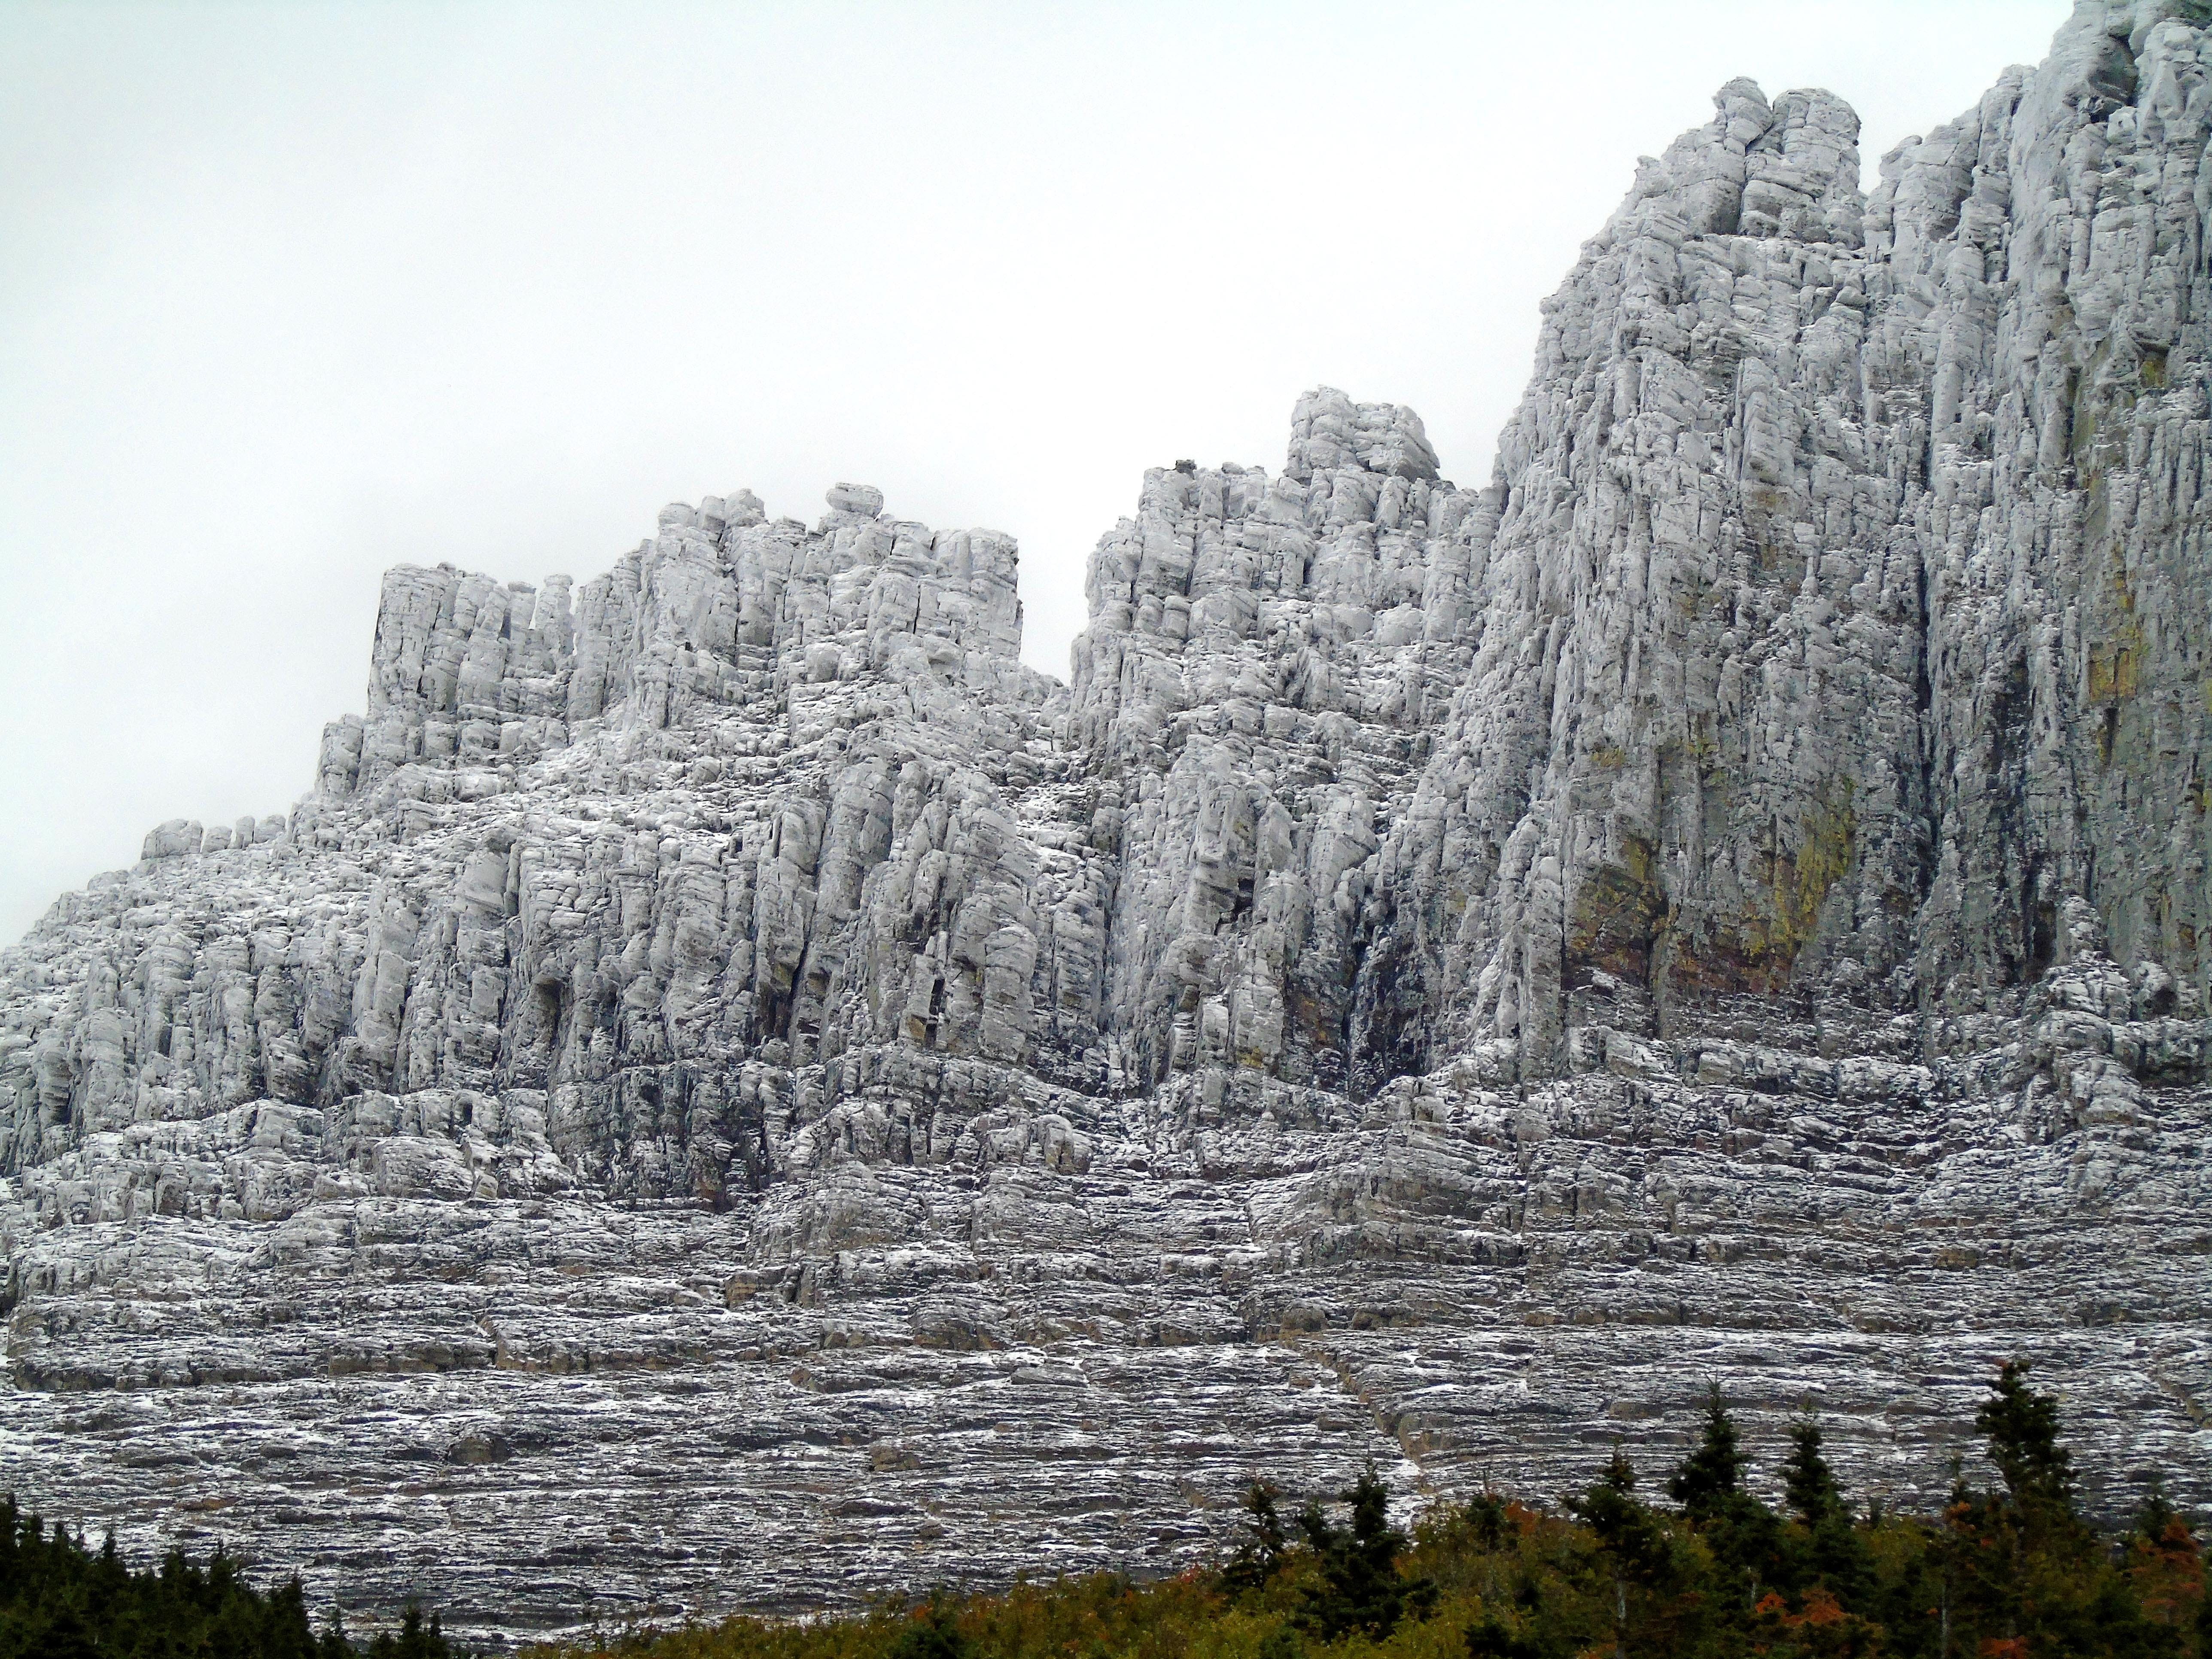 Snow dusts rugged mountains along Going-to-the-Sun Road in Glacier National Park in late September.